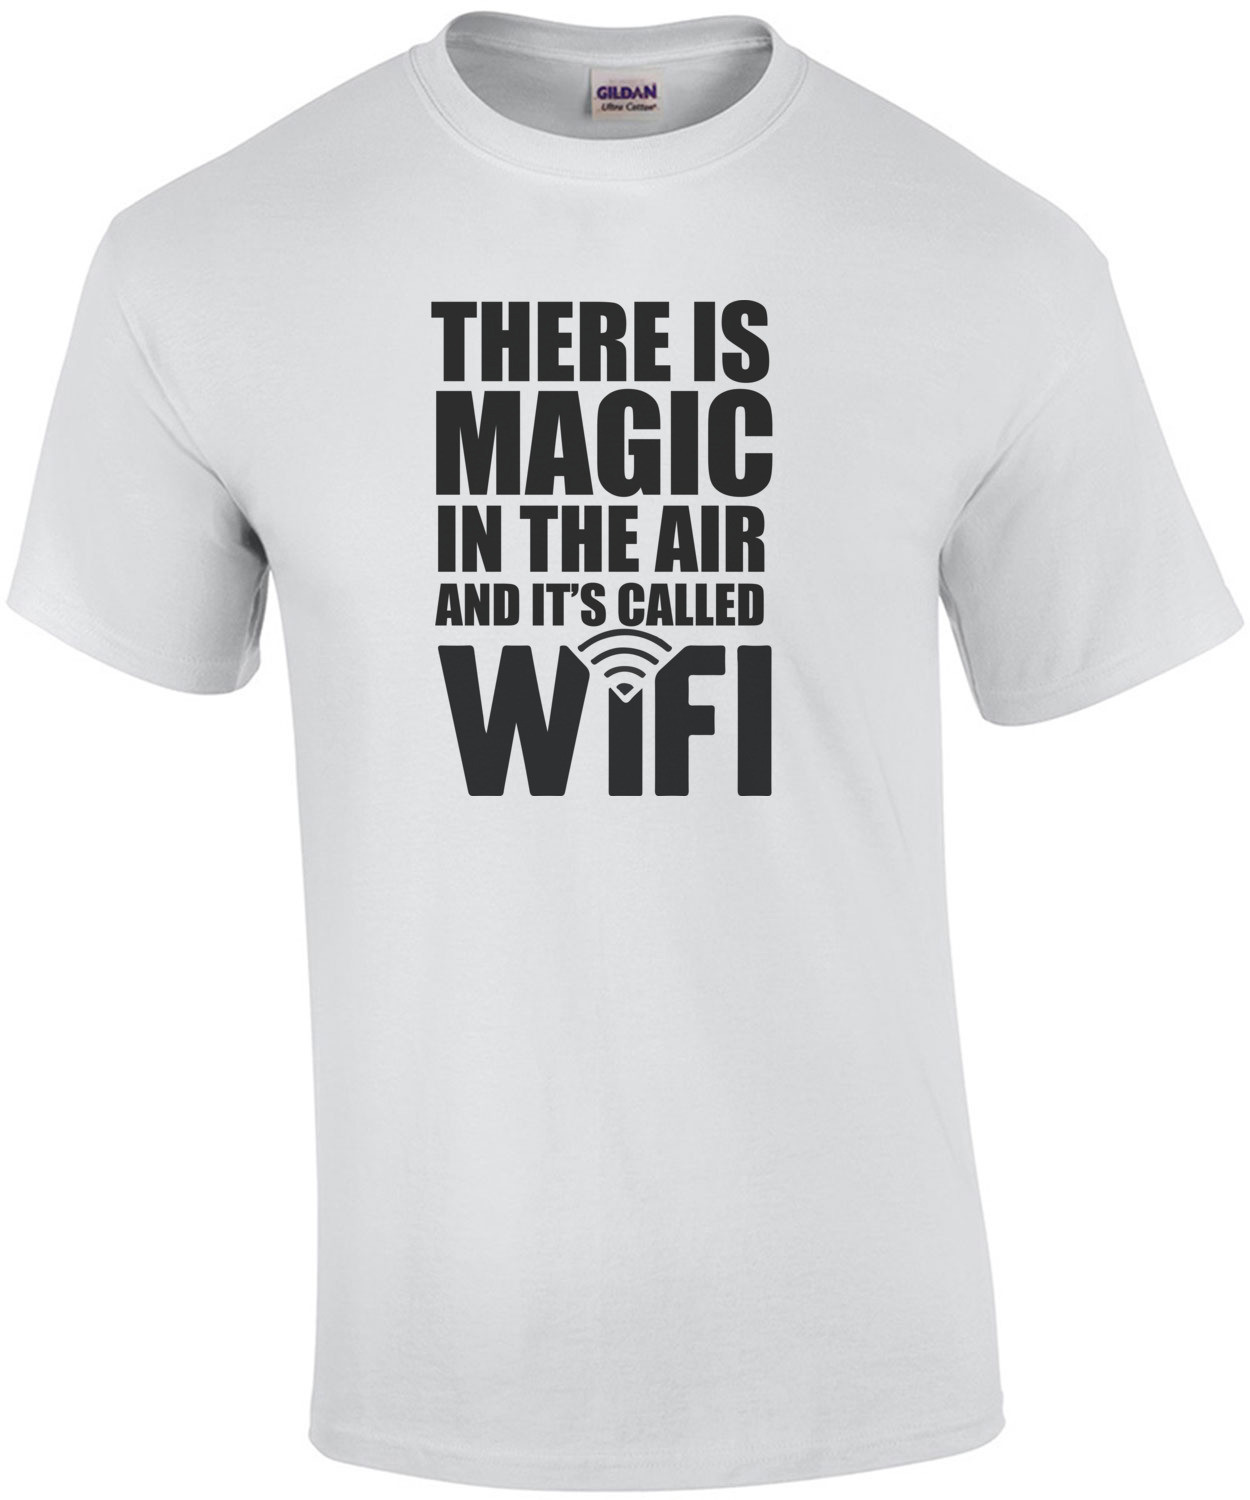 There is magic in the air and it's called WiFi. T-Shirt